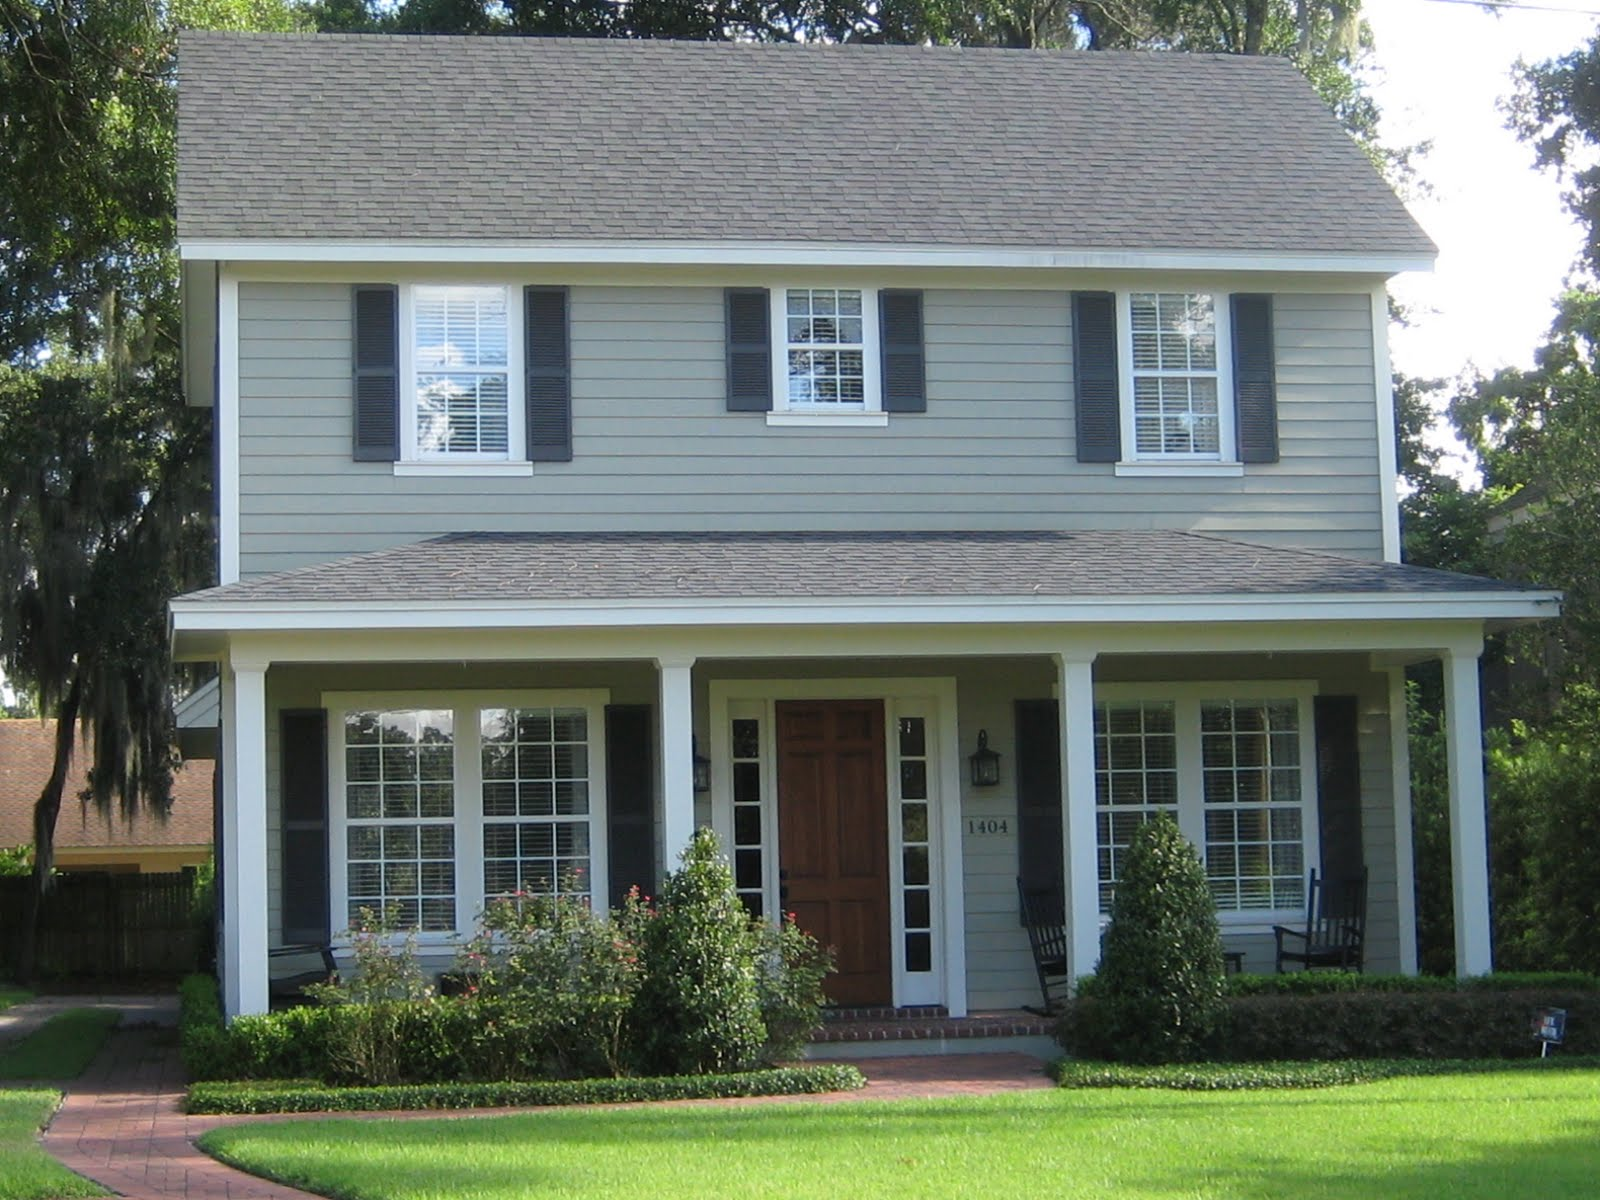 Green street exterior house color contenders Brown exterior house paint schemes